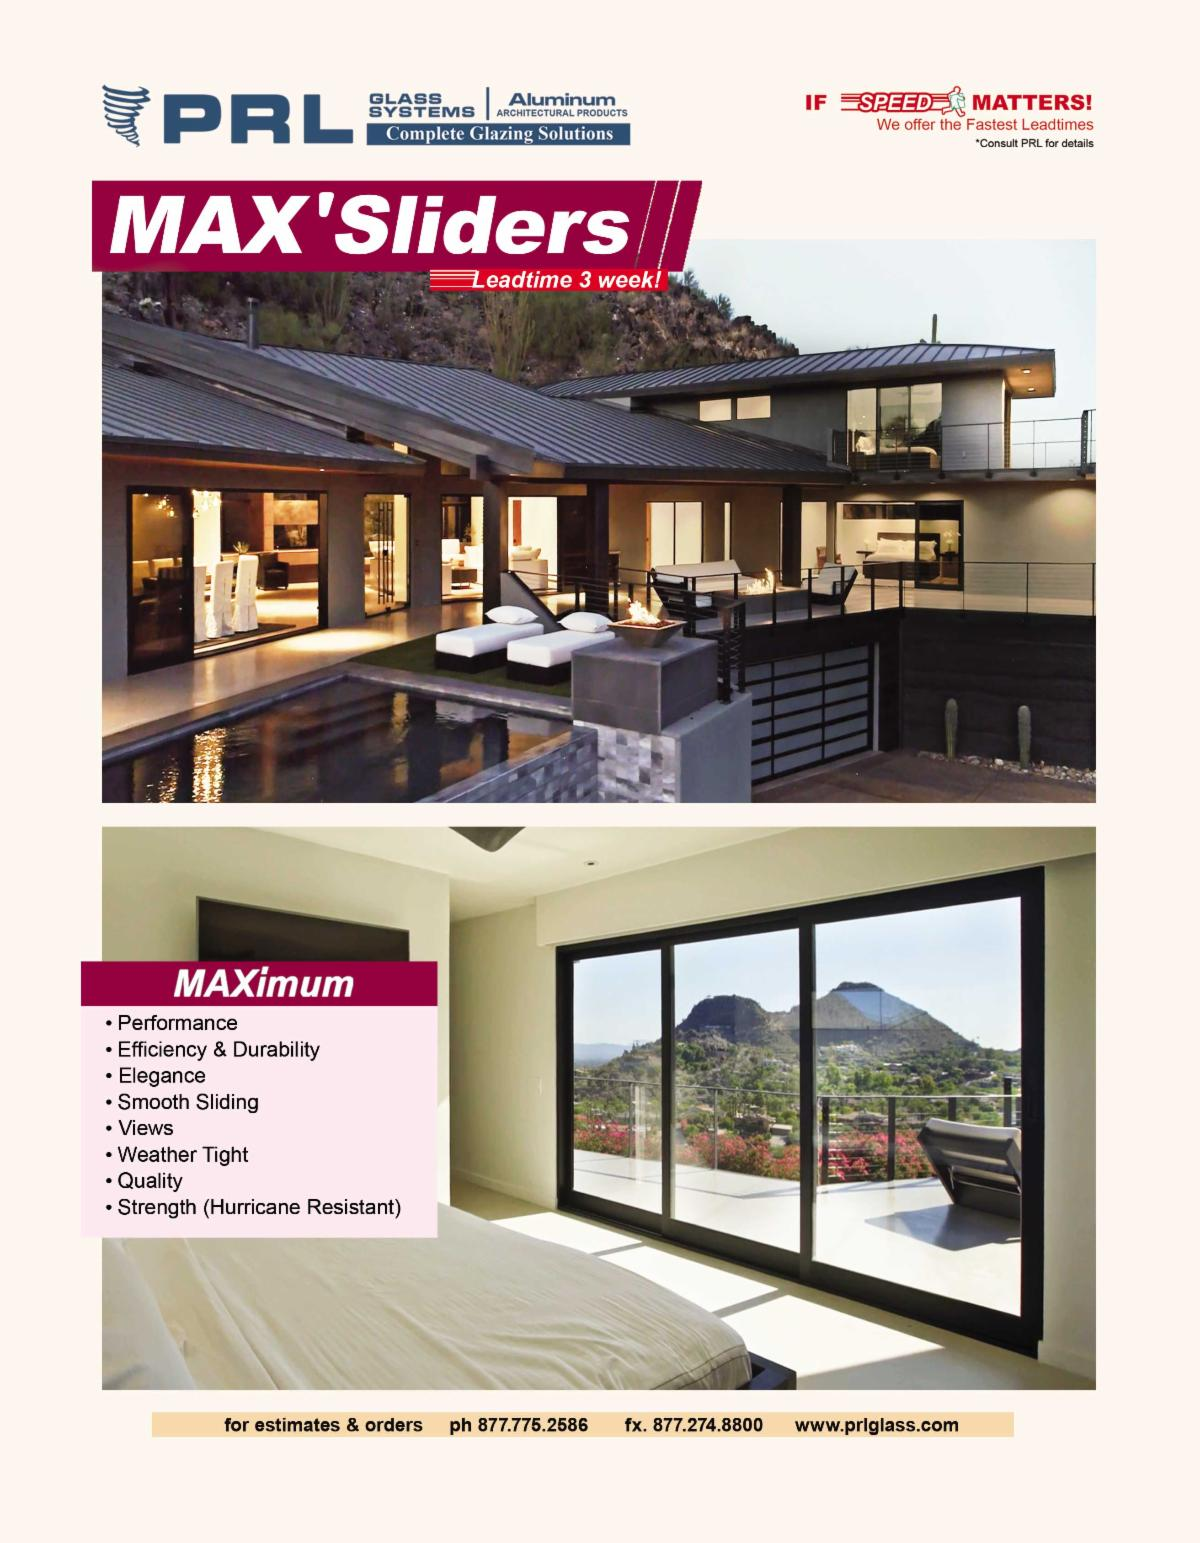 PRL Max Aluminum Sliding Doors. Who Makes Traditional & Corner Sliders? Buy at PRL!